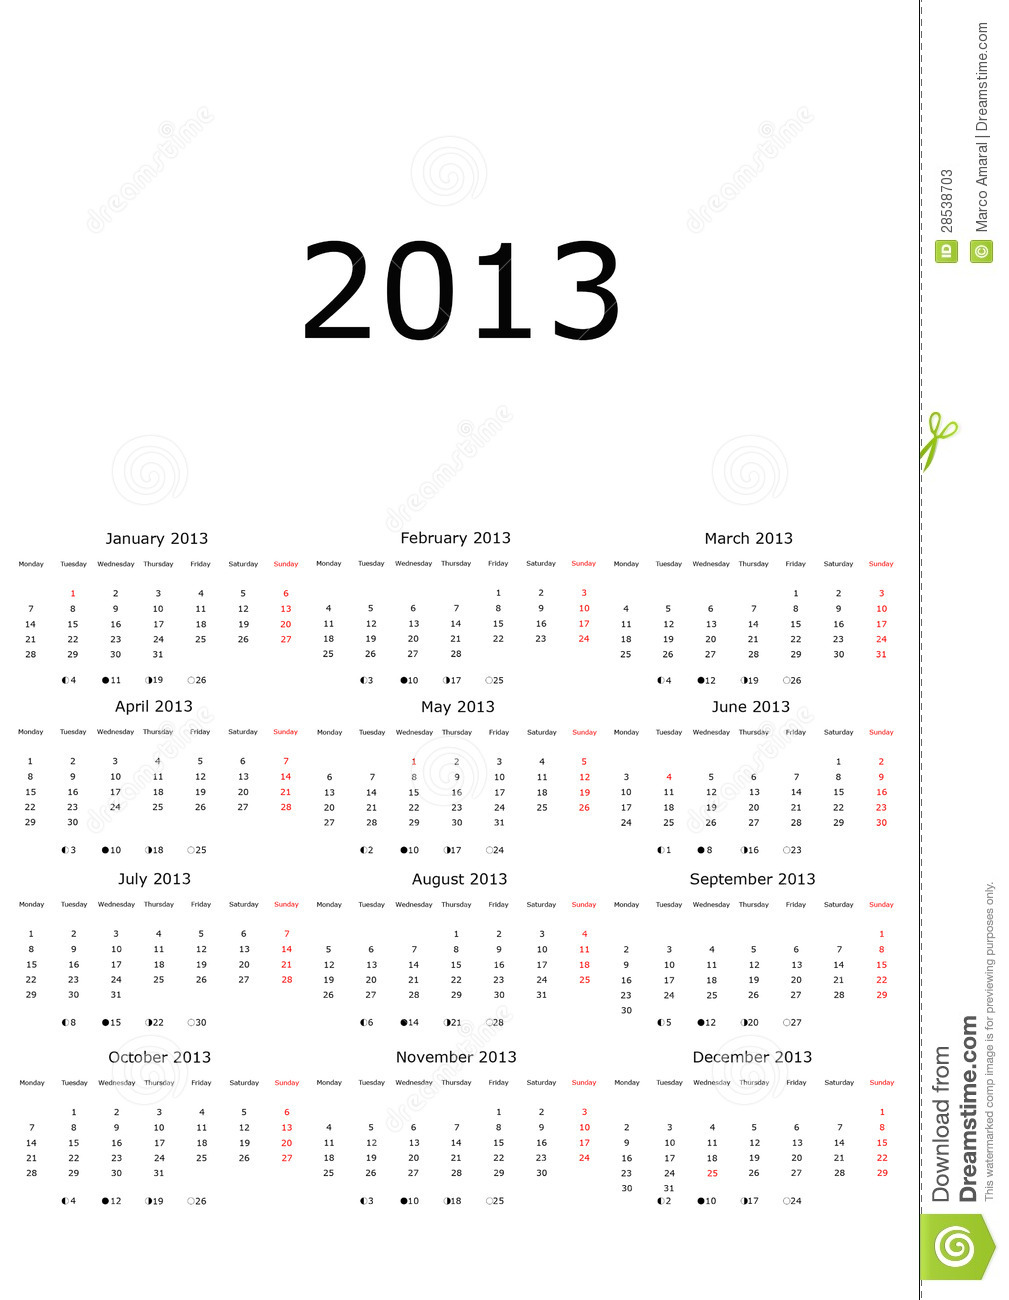 2013 http://www.dreamstime.com/stock-photos-calendar-2013-moon-phases